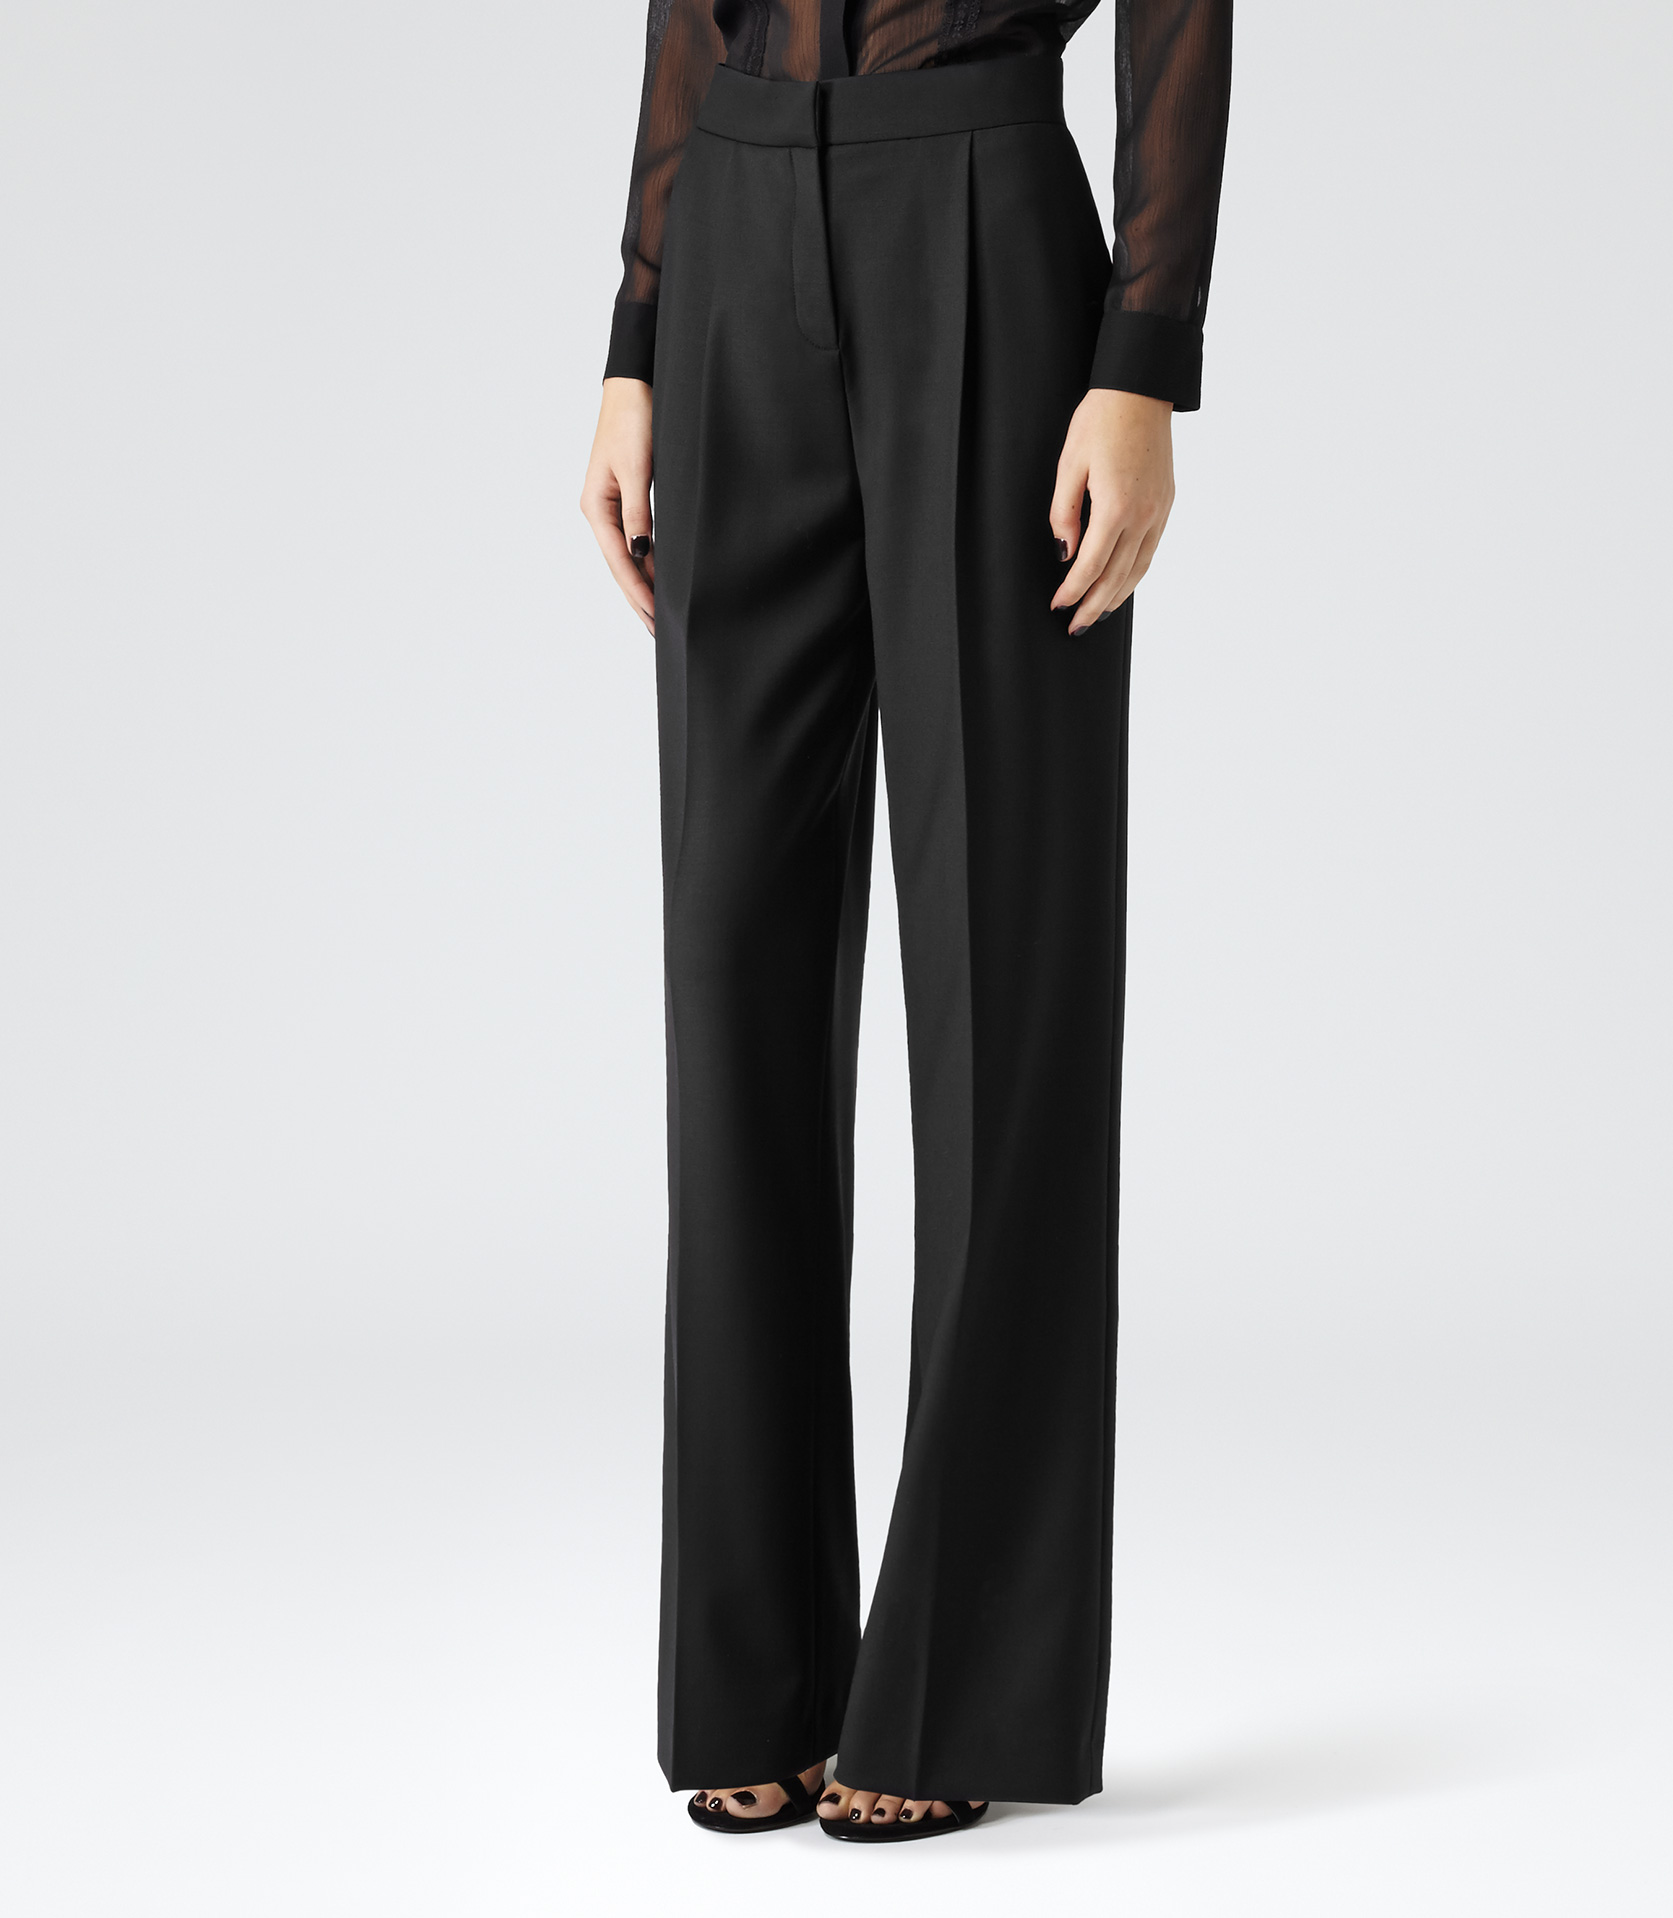 Black High-waisted Wide Leg Trousers - REISS